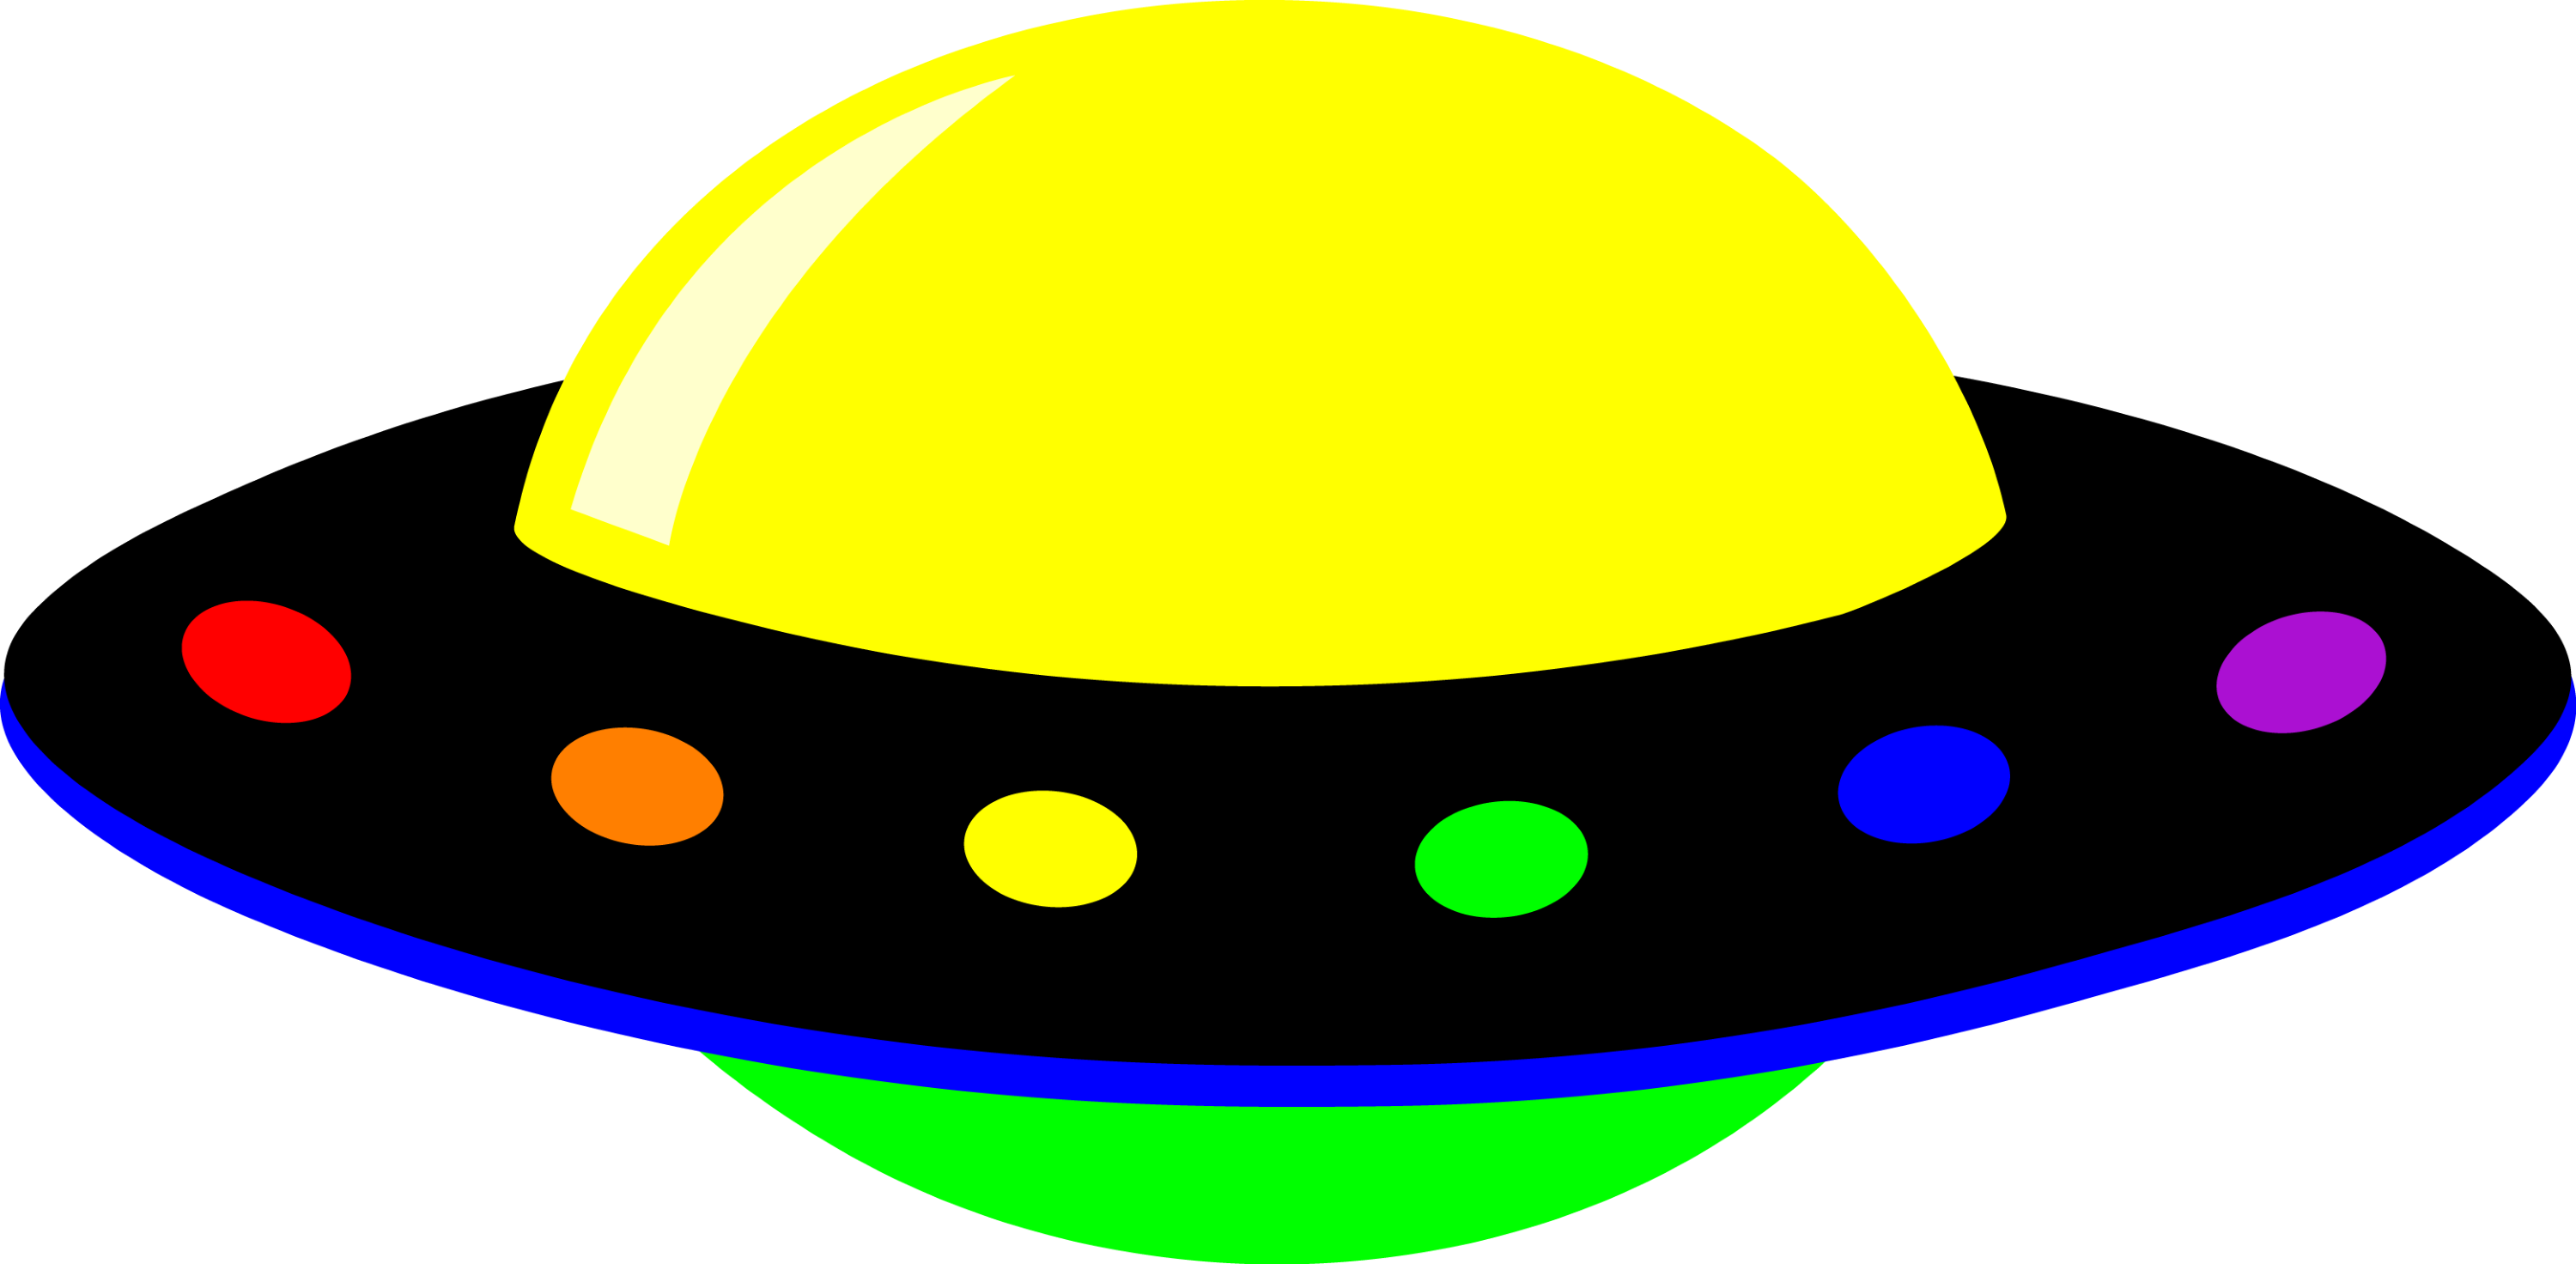 ufo clipart images - photo #32